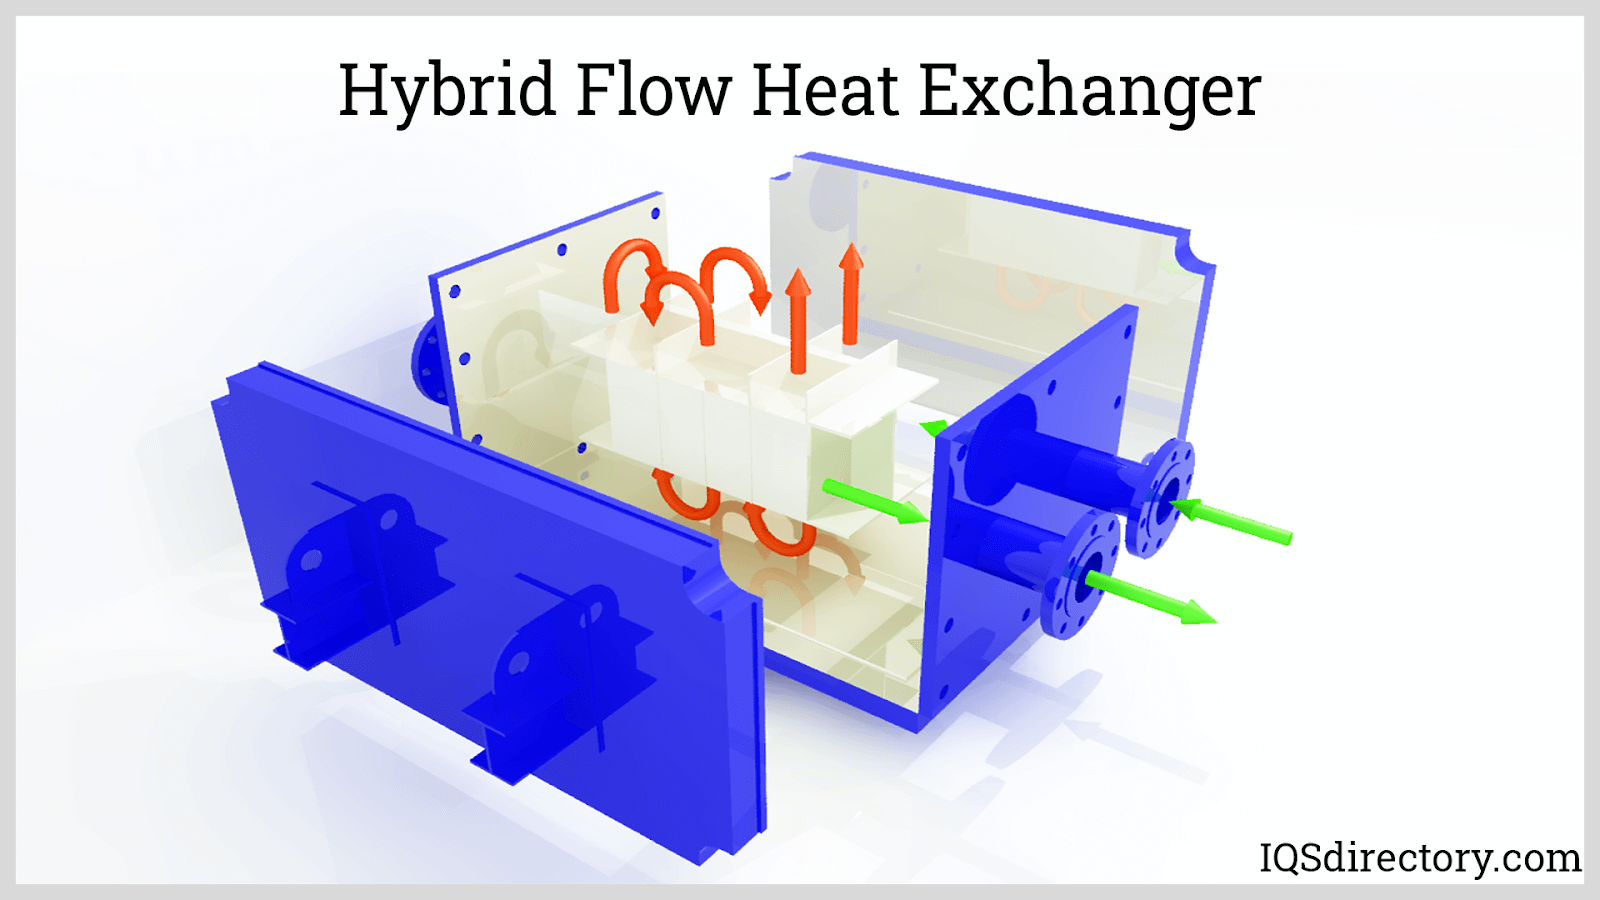 Hybrid Flow Heat Exchanger